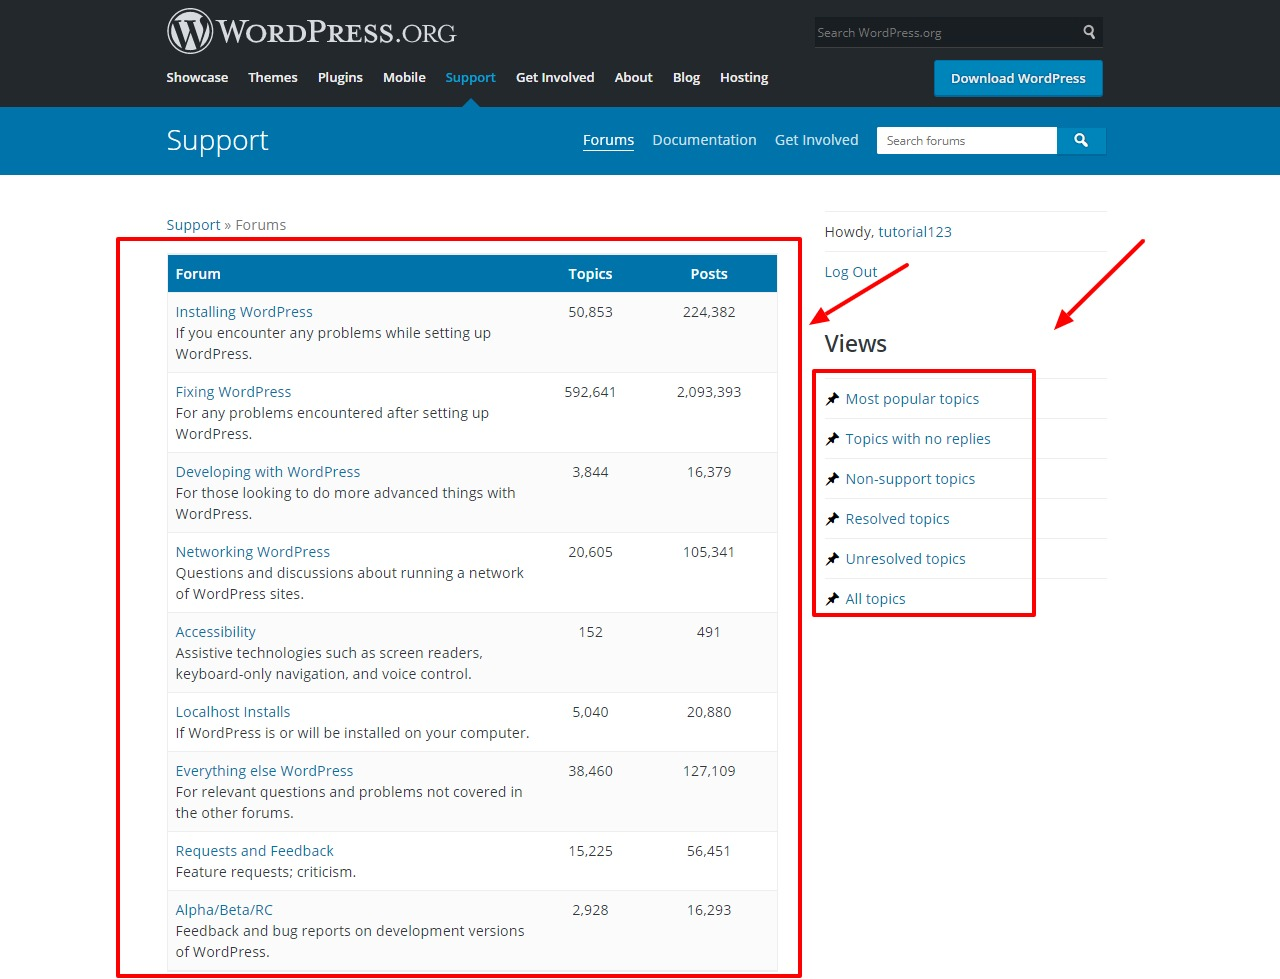 wordpress-org-support-forums-category